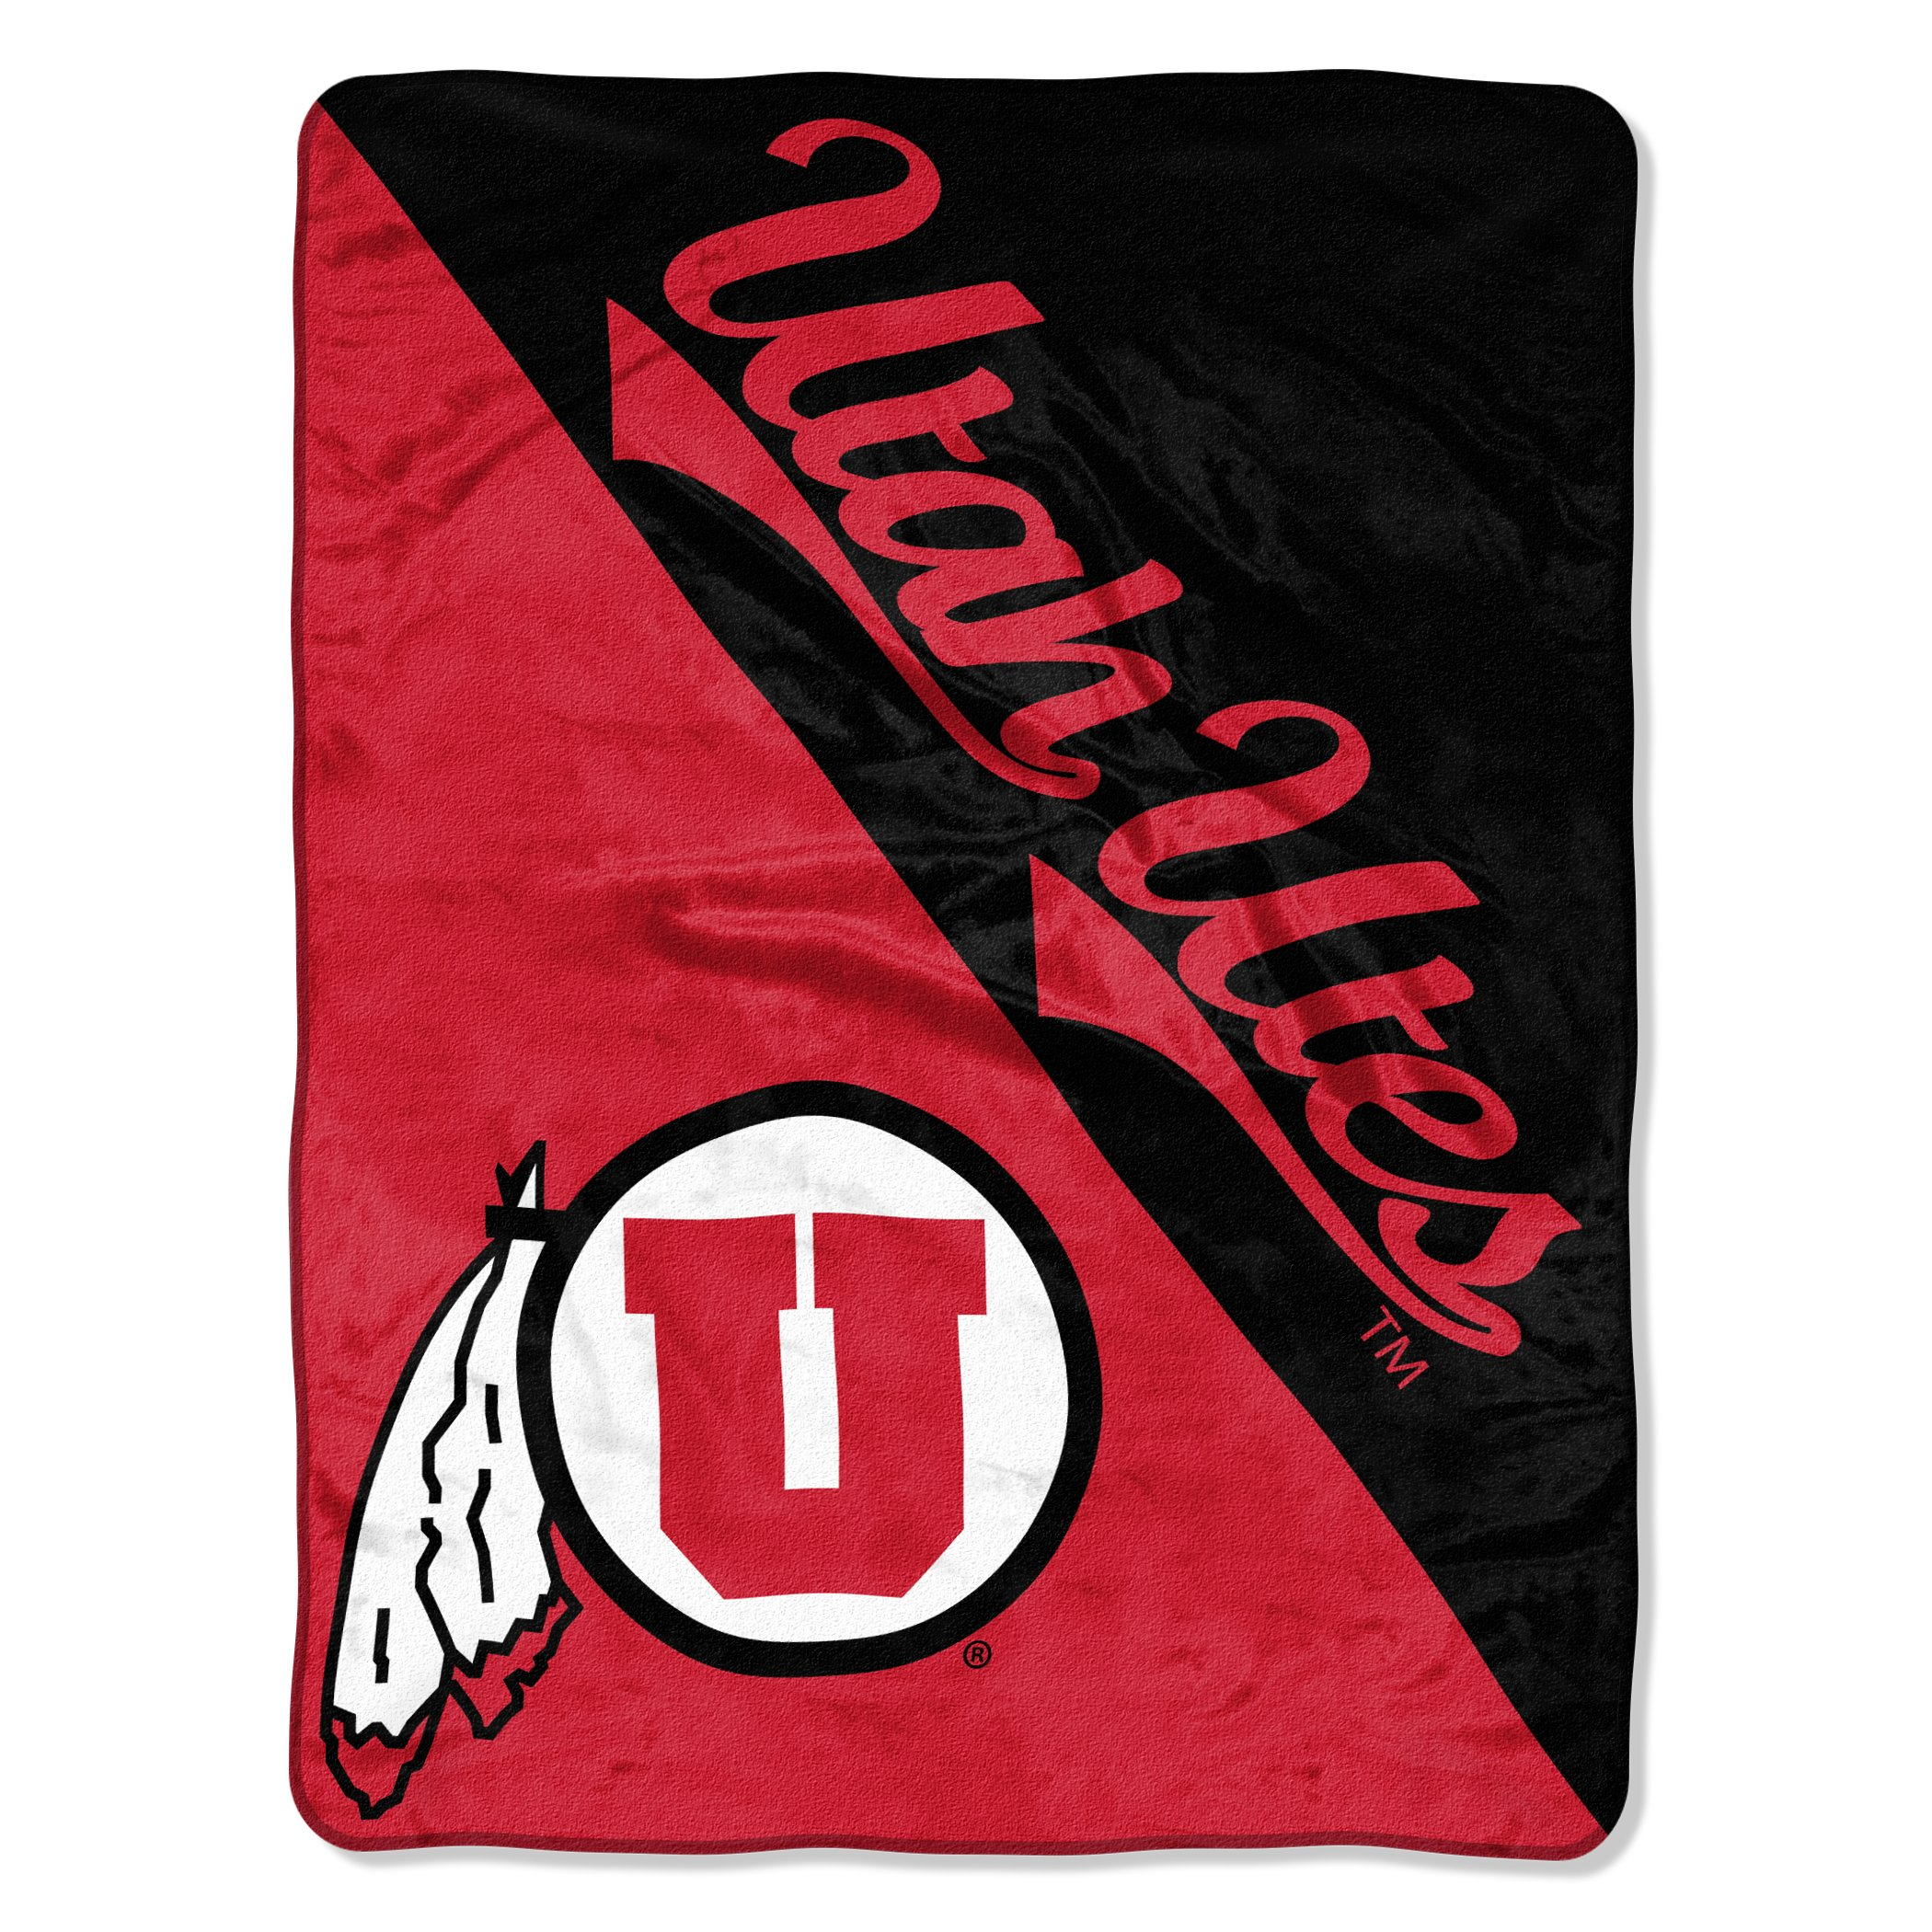 The Northwest Company Officially Licensed NCAA Utah Utes Halftone Micro Raschel Throw Blanket, 46'' x 60'', Multi Color by The Northwest Company